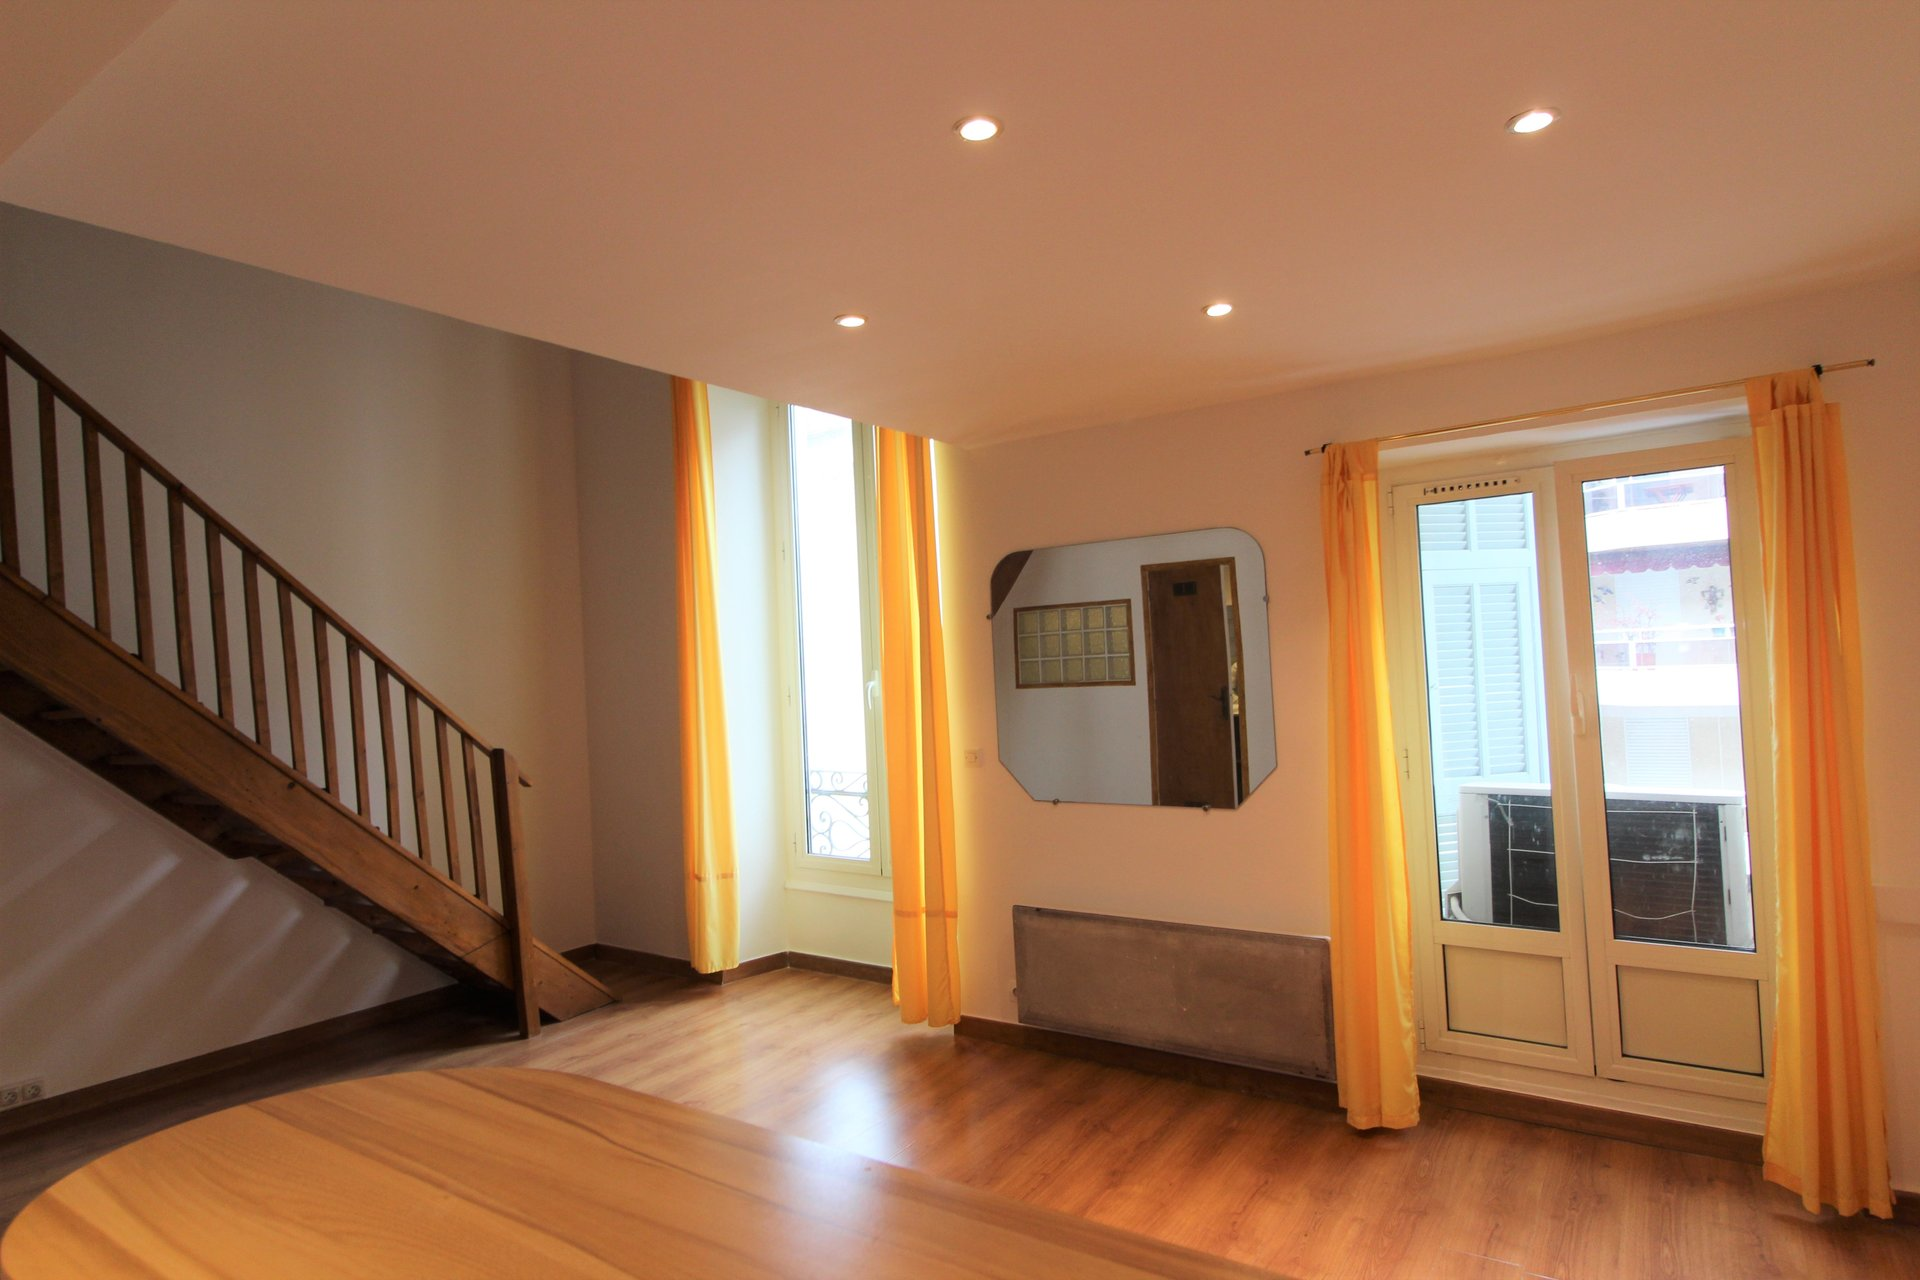 NICE CARRE D'OR DUPLEX 47M²